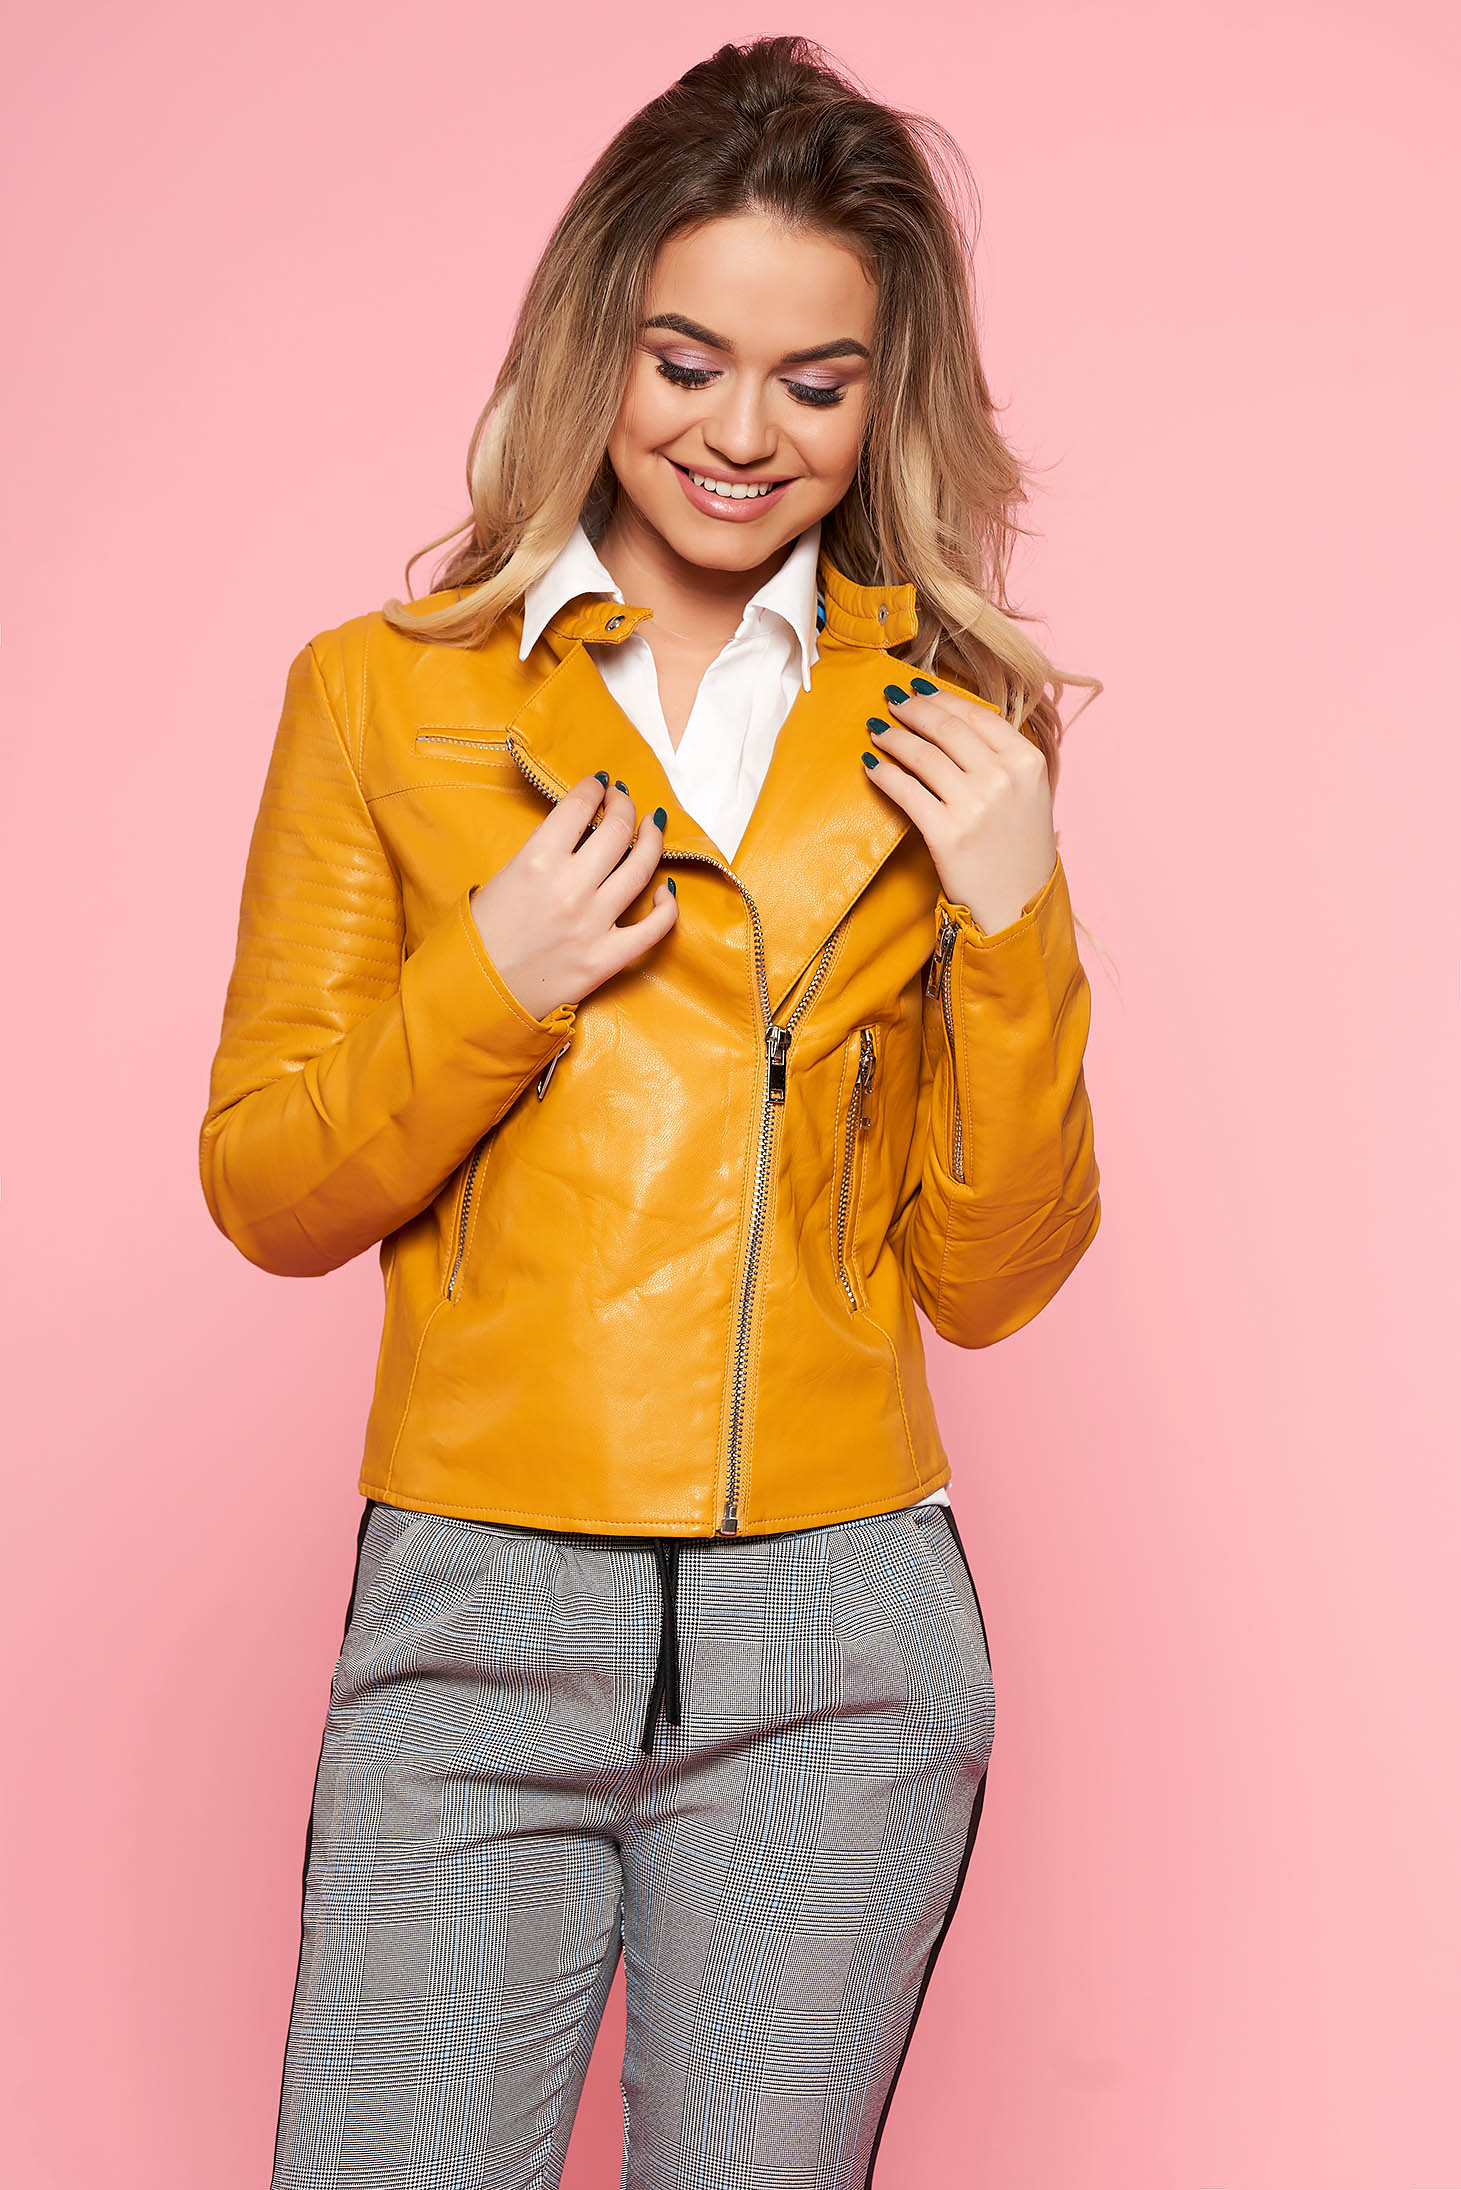 SunShine mustard casual jacket from ecological leather with inside lining with zipper details pockets